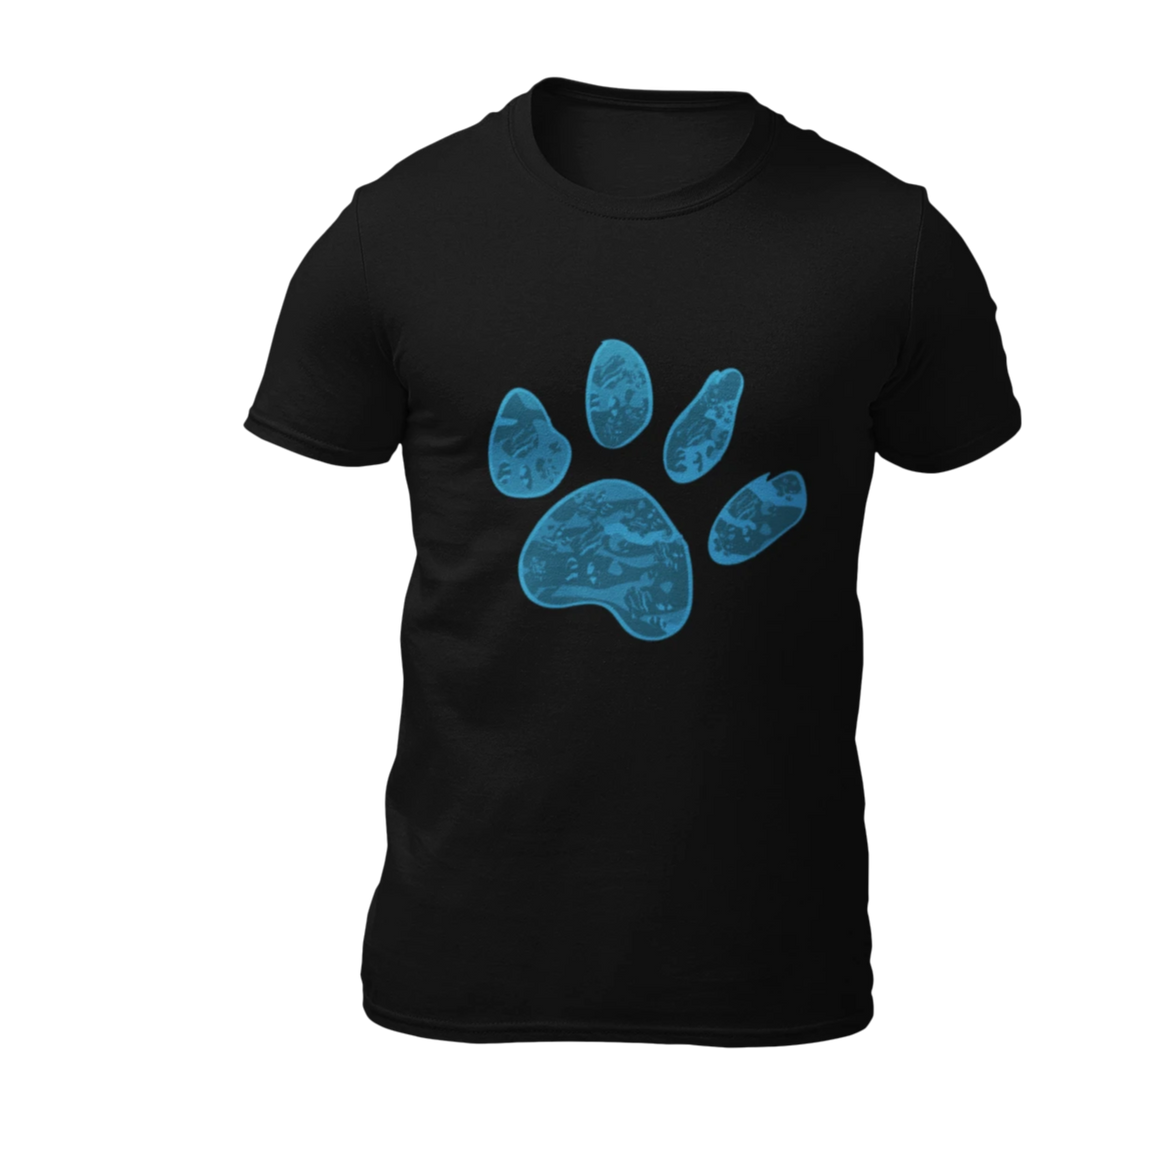 Blue Paw - Black